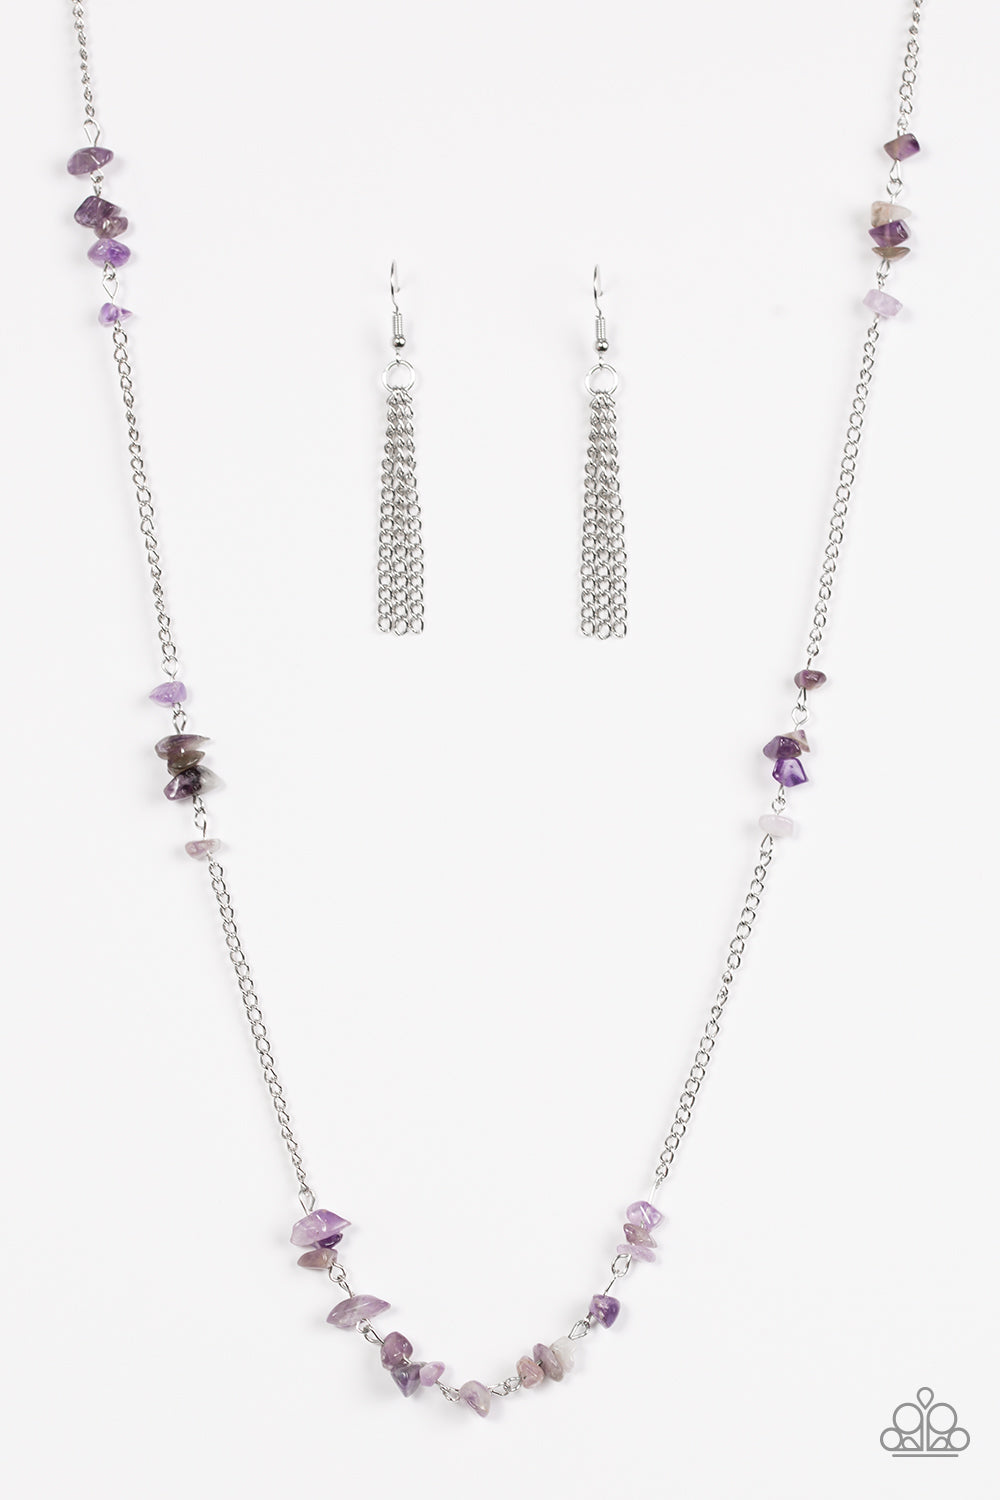 five-dollar-jewelry-canyon-catwalk-purple-necklace-paparazzi-accessories